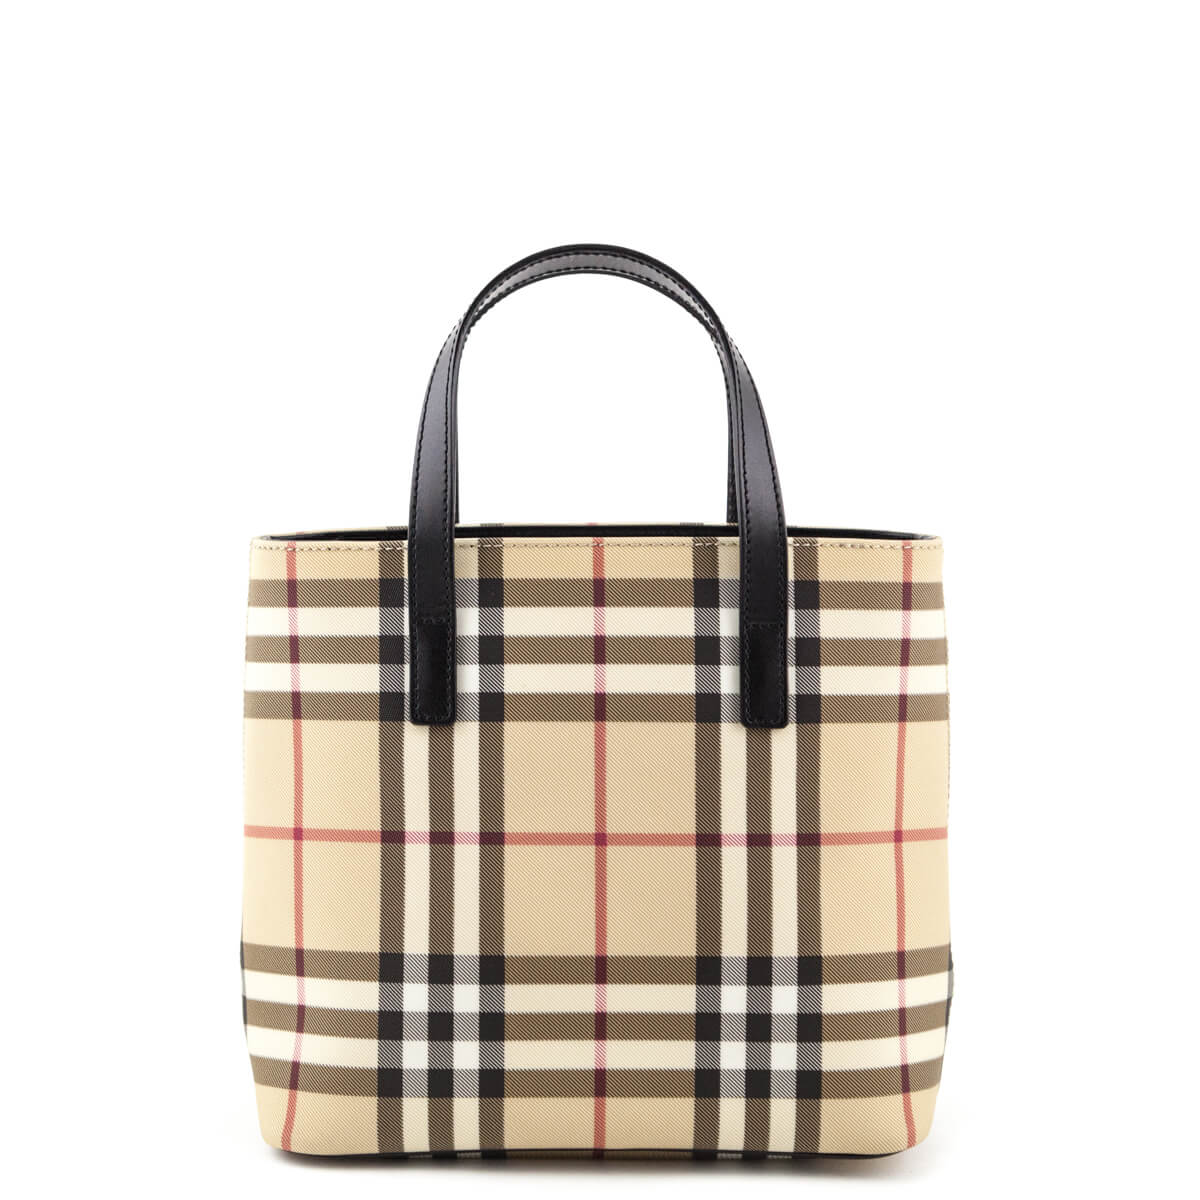 aecfb7fa5b45 ... Burberry Nova Check Coated Canvas Small Tote Bag - LOVE that BAG -  Preowned Authentic Designer ...